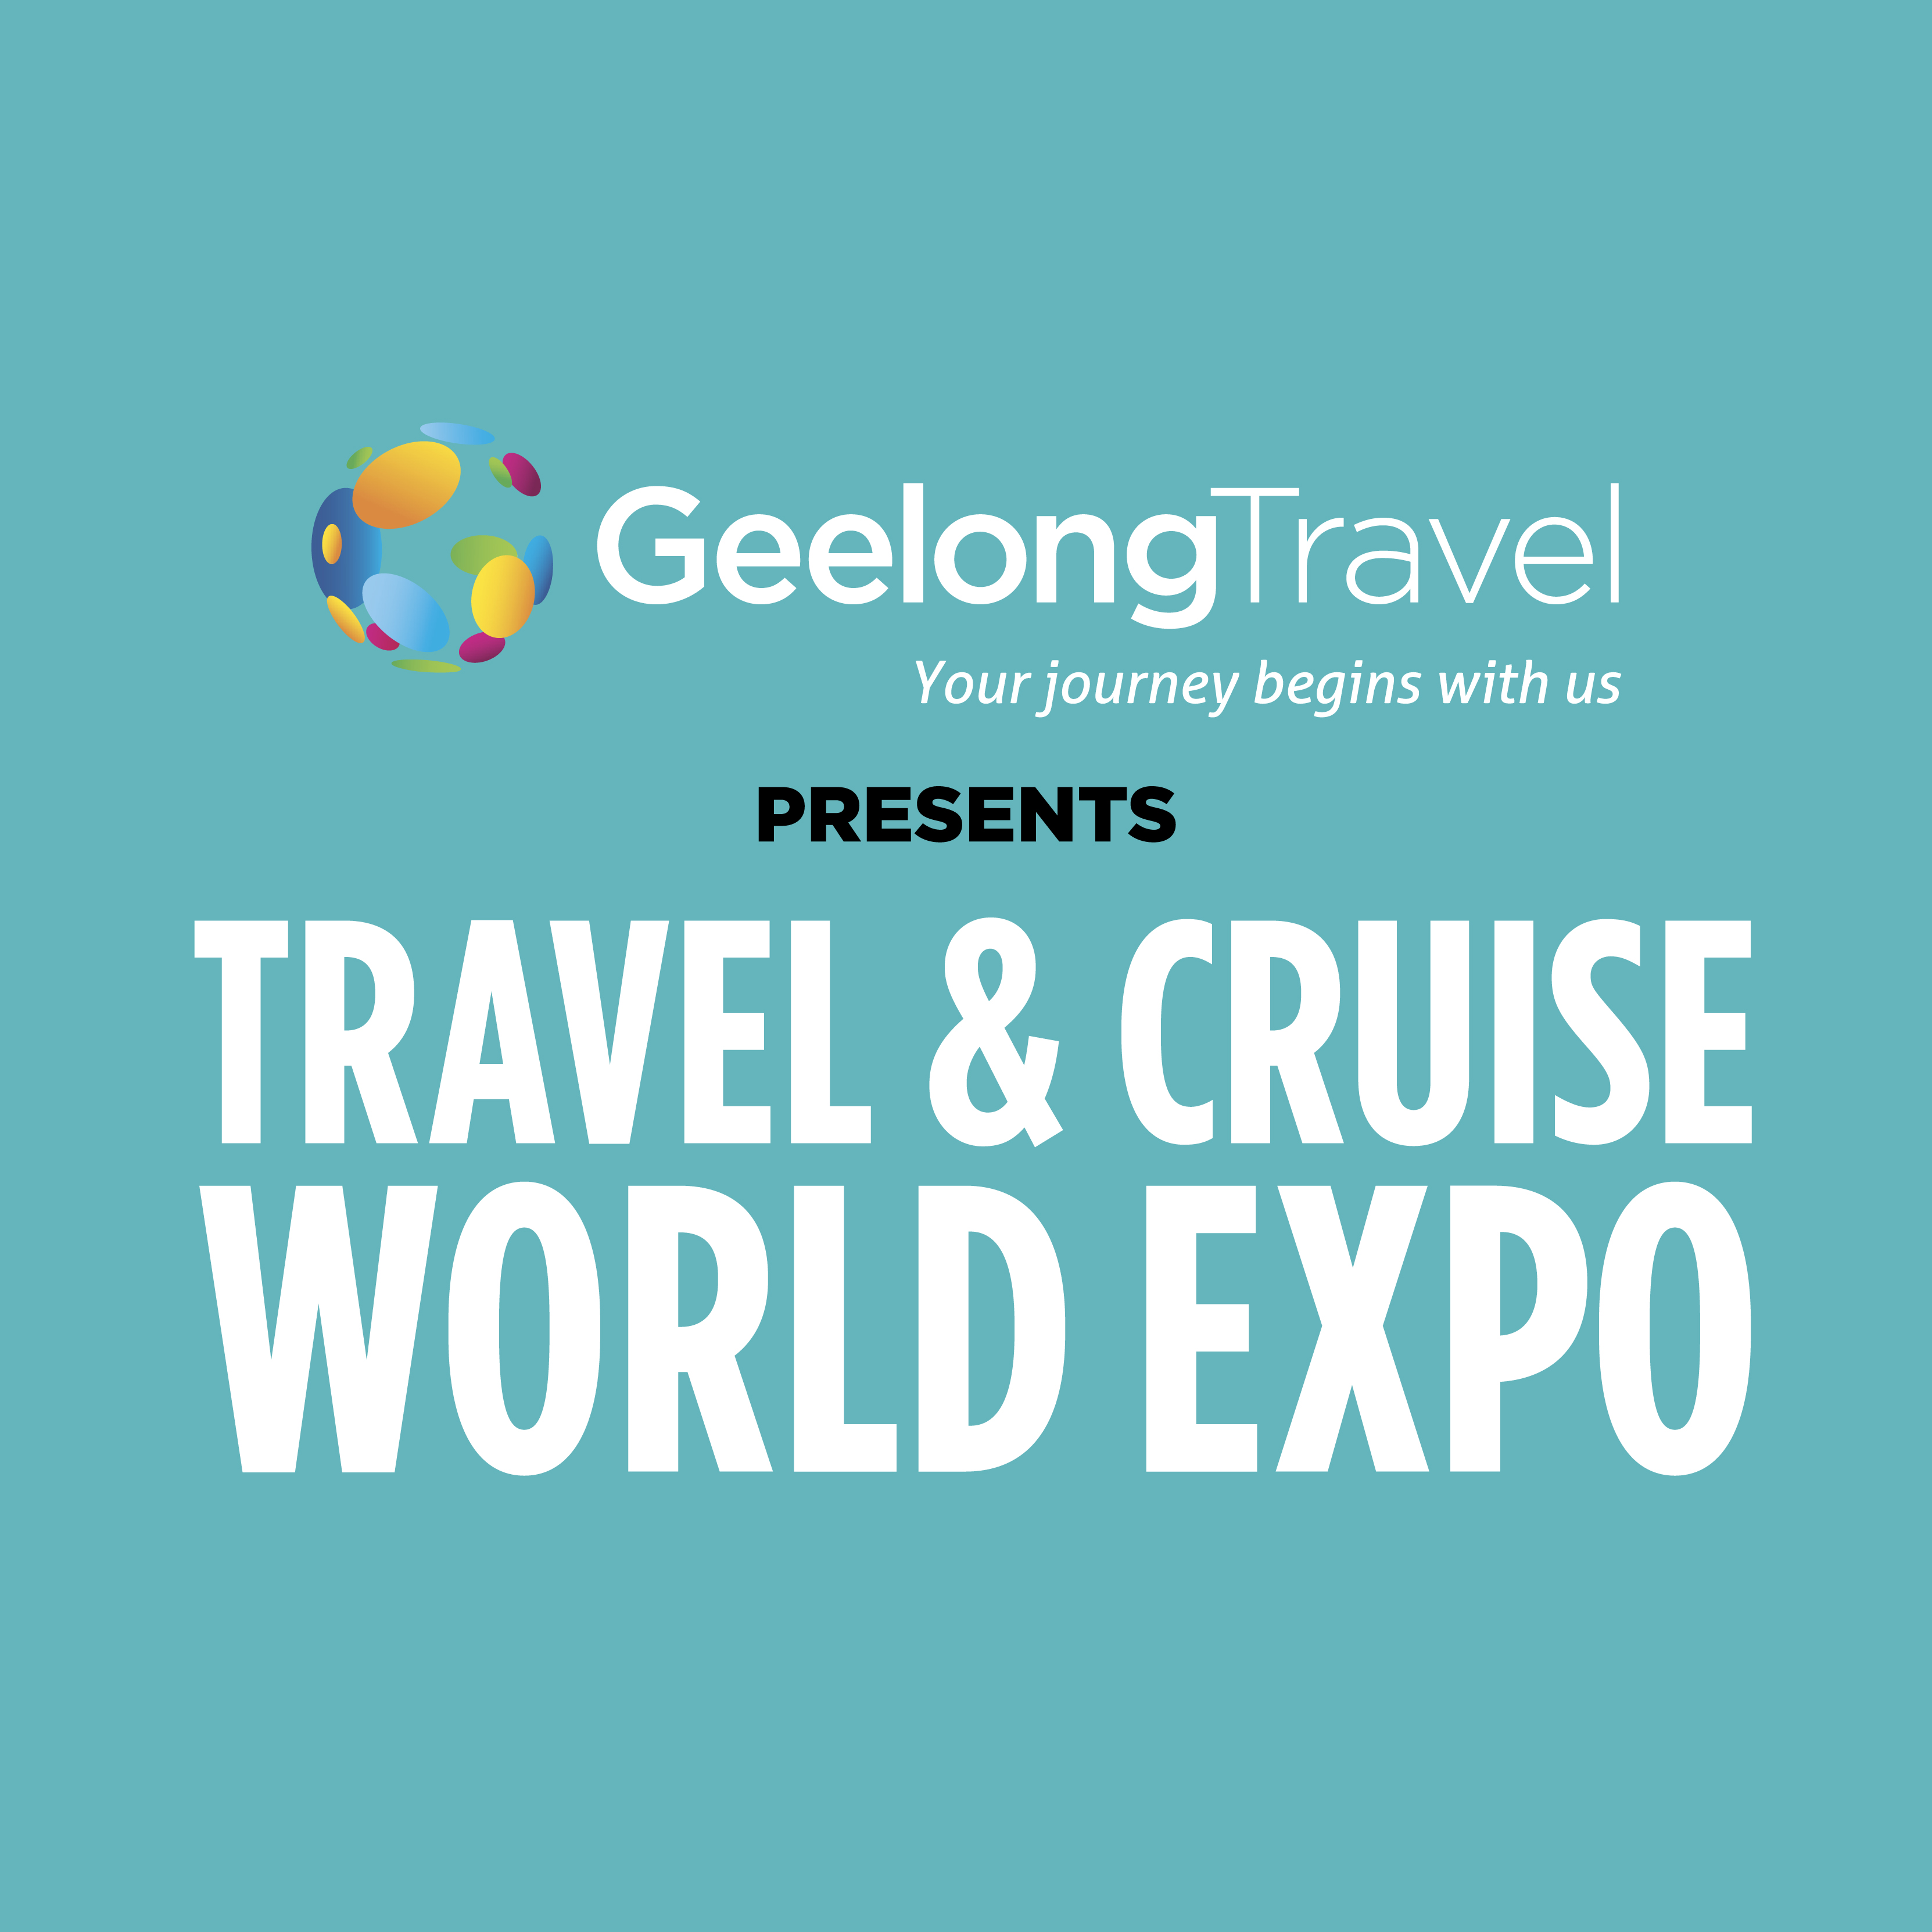 Geelong Travel and Cruise World Expo